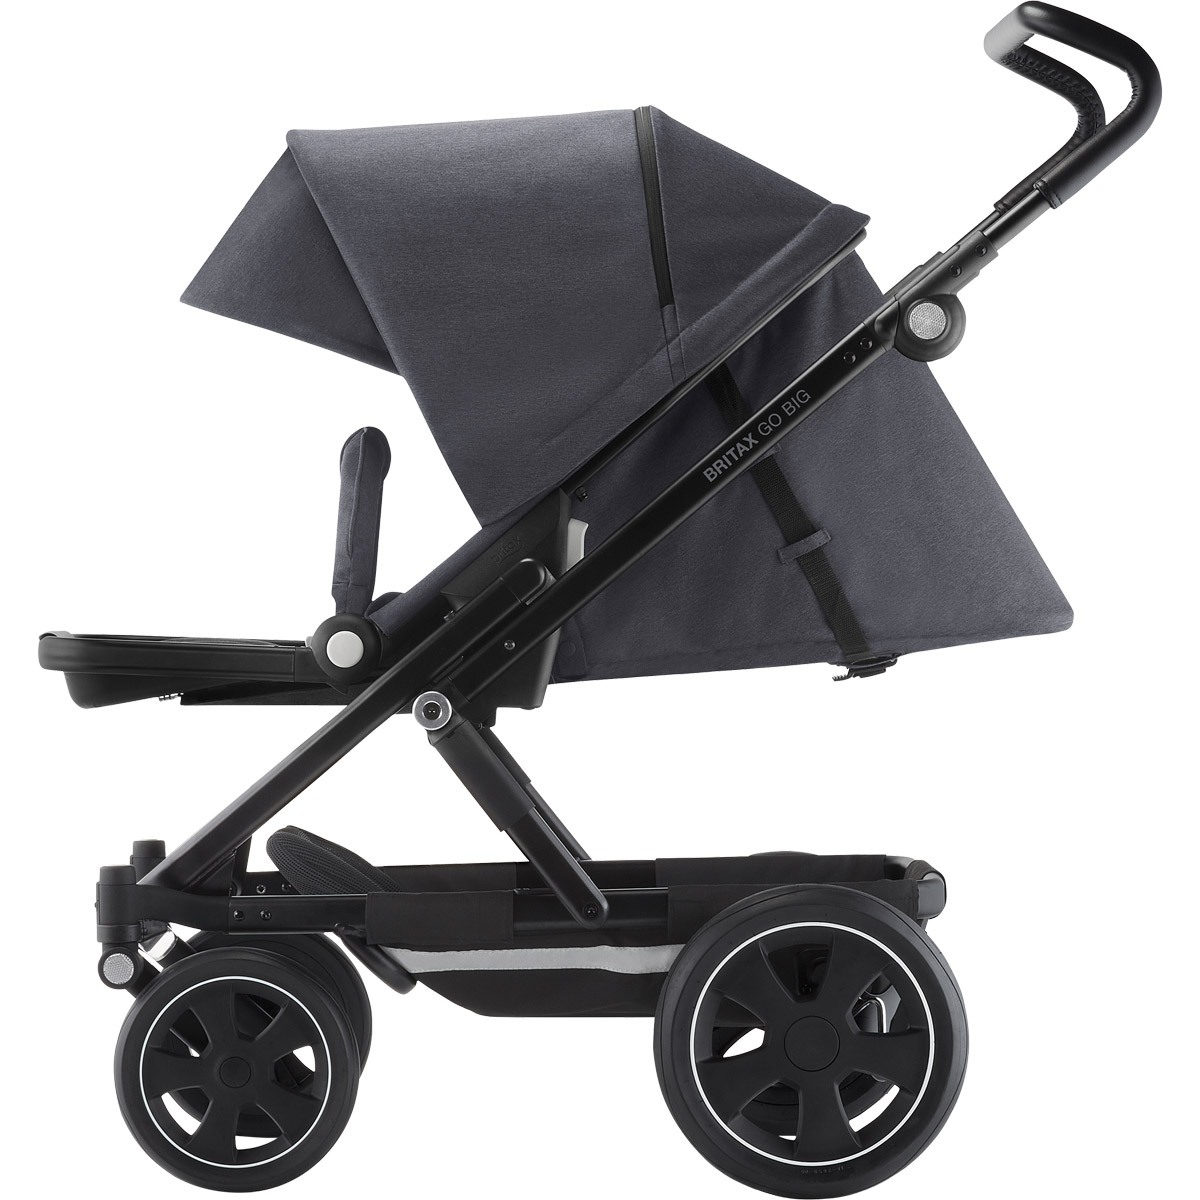 britax go big 2 kinderwagen steel grey zum aktionspreis. Black Bedroom Furniture Sets. Home Design Ideas